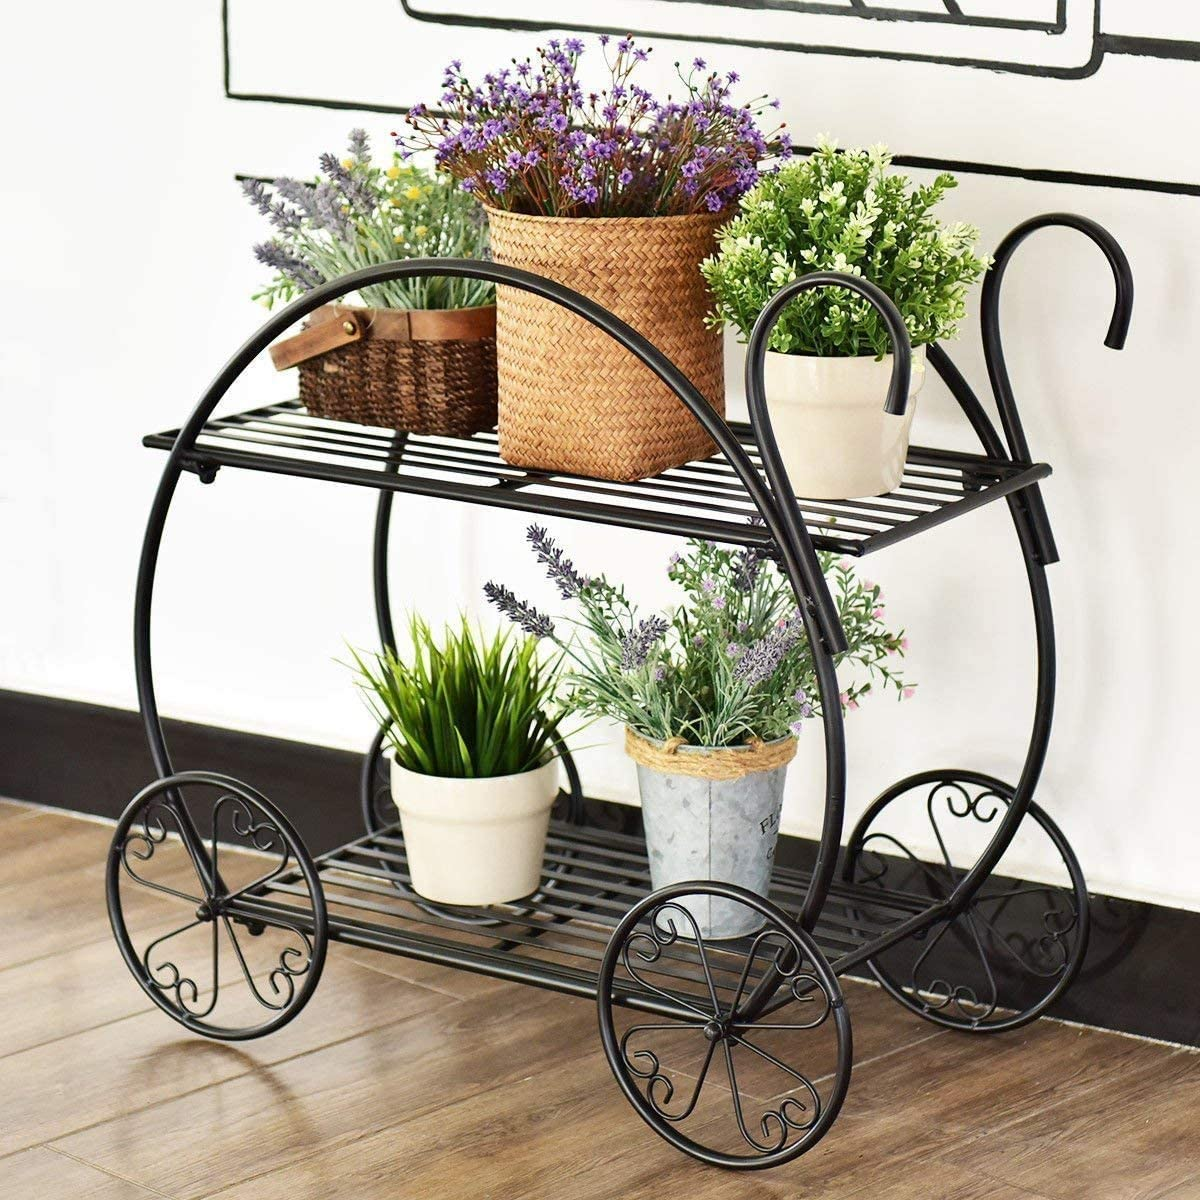 Giantex Garden Cart Metal Plant Stand with 4 Decorative Wheels, Succulent Collection Flower Pot Holder Display Shelf for Home Patio Garden Flower Shop, Parisian Style Plant Potted Rack (2-Tier)